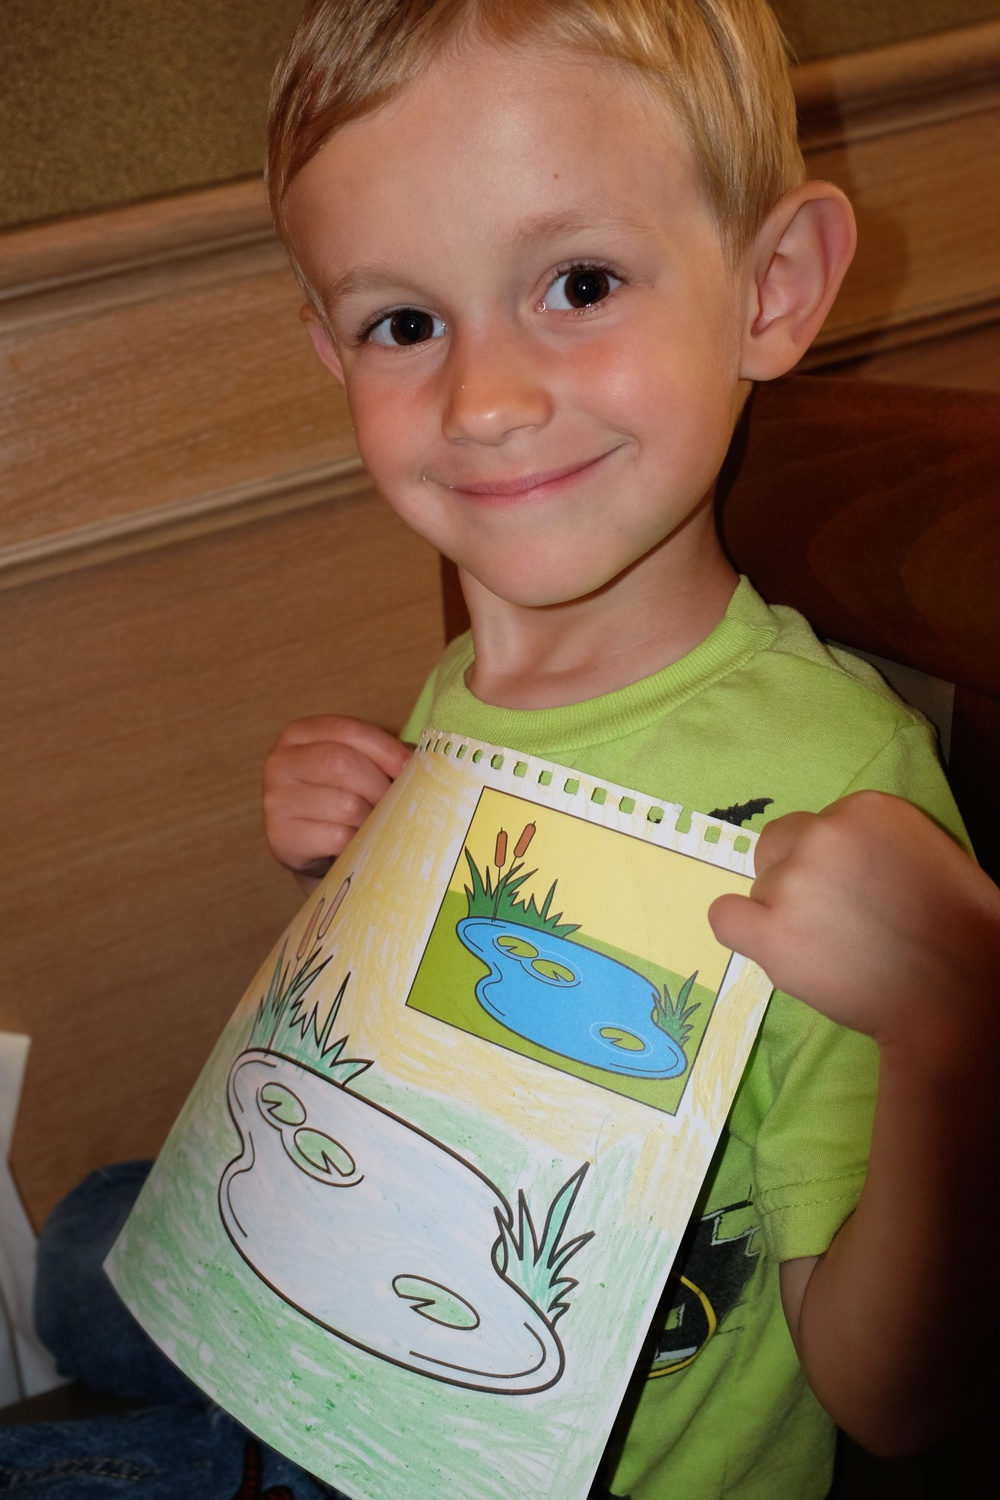 Kian and his coloring page at the restaurant :)